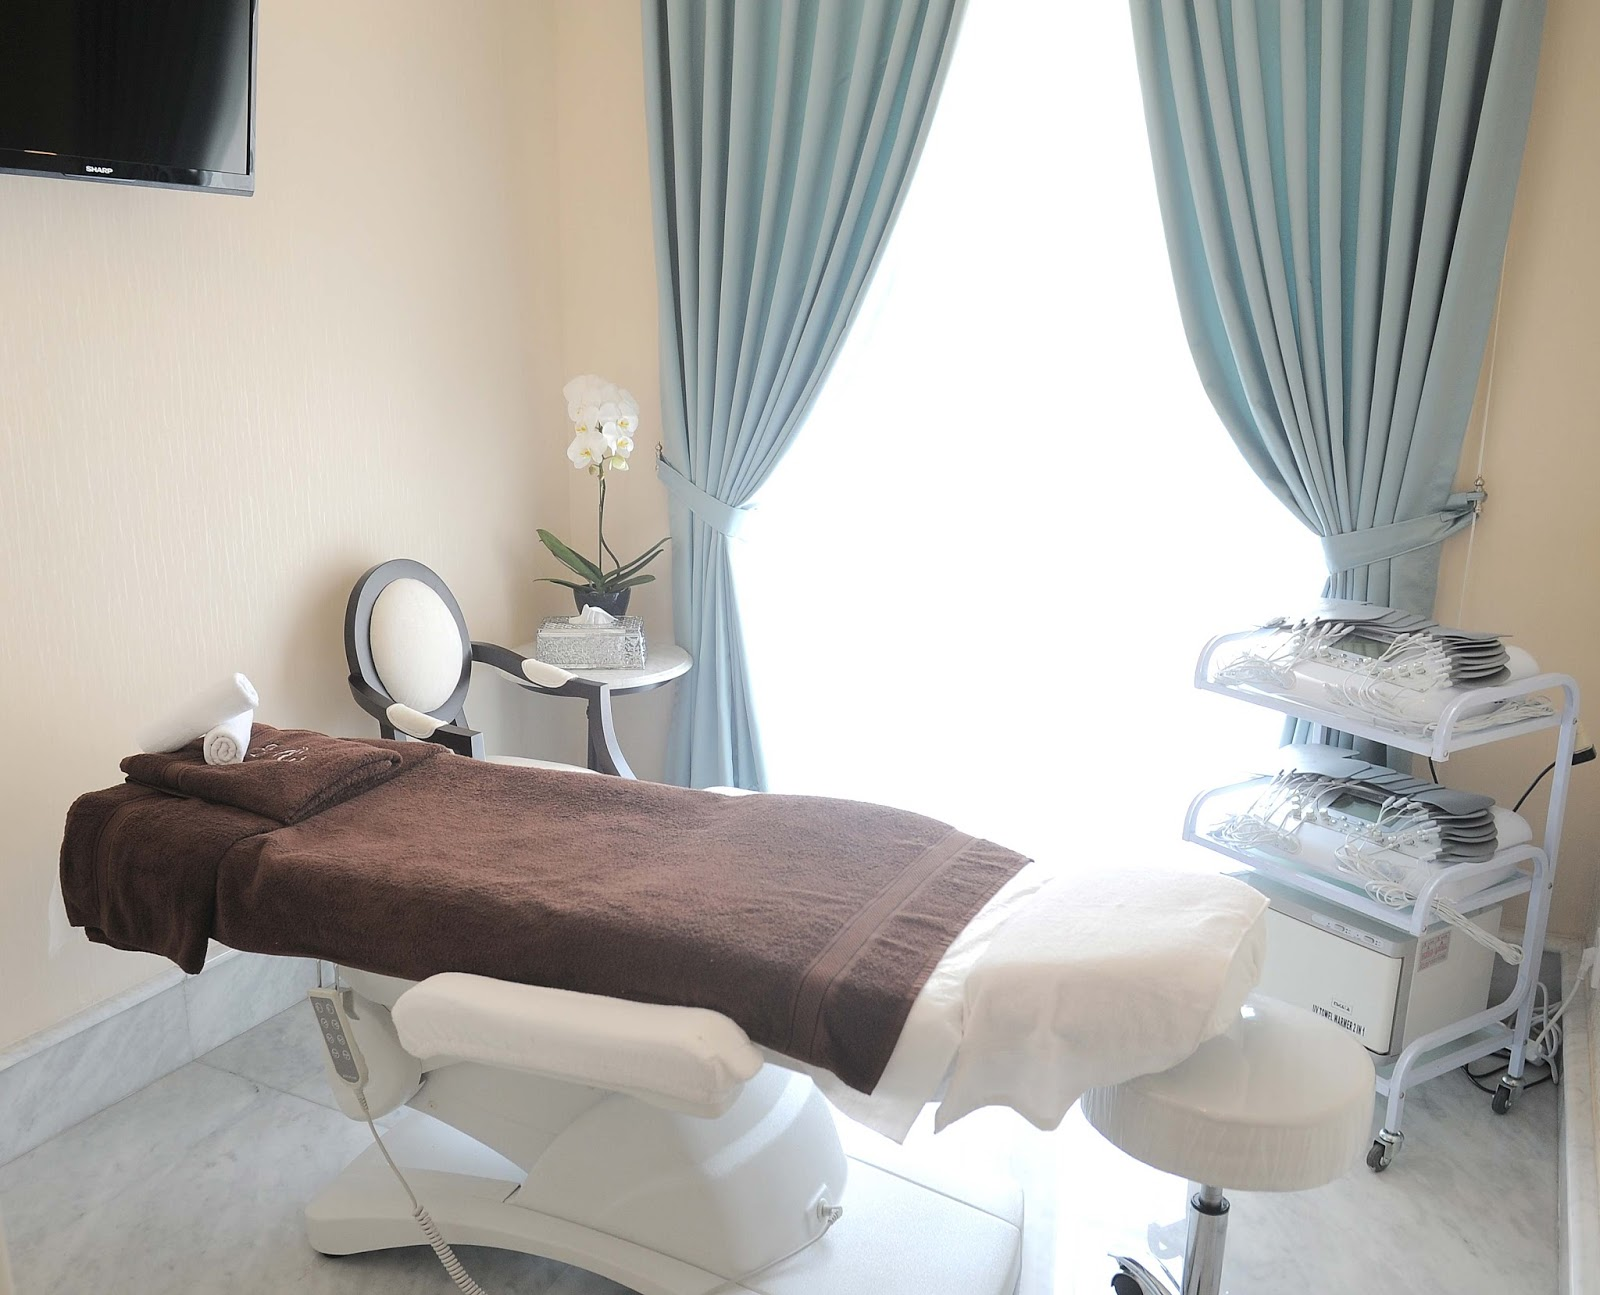 oya clinic, beauty clinic, face contour, beauty surgery, face, klinik kecantikan, indonesia, jakarta